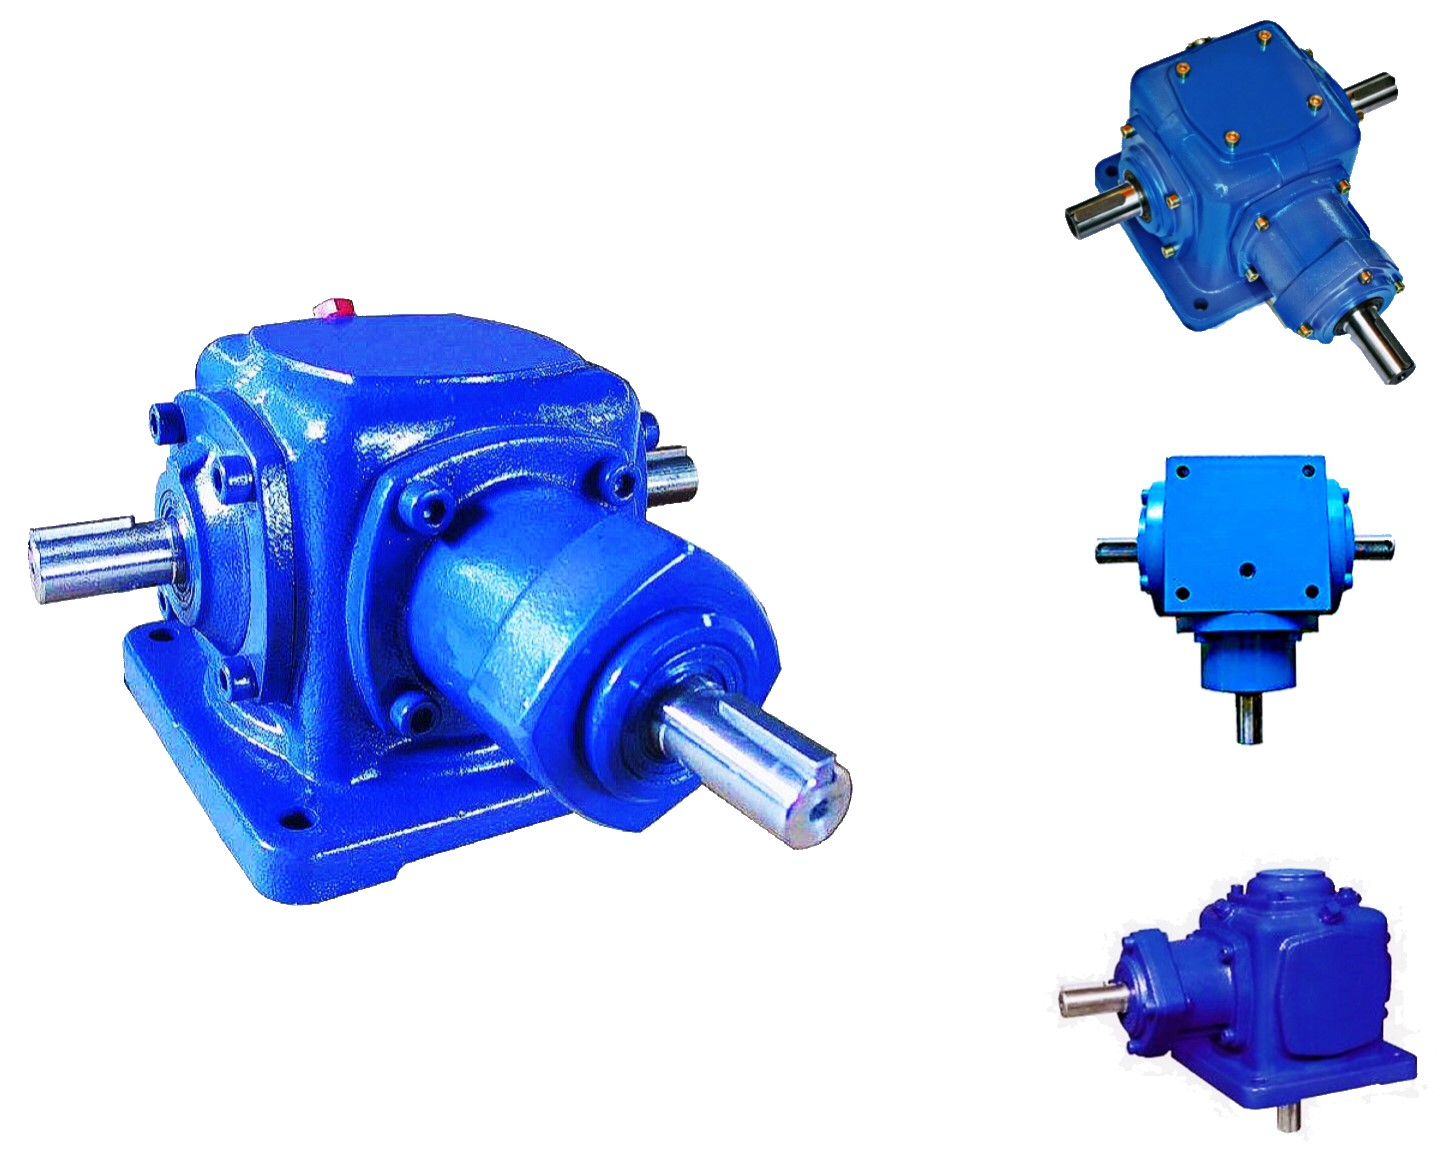 SAINEER T series double output 4 way bevel steering gearbox